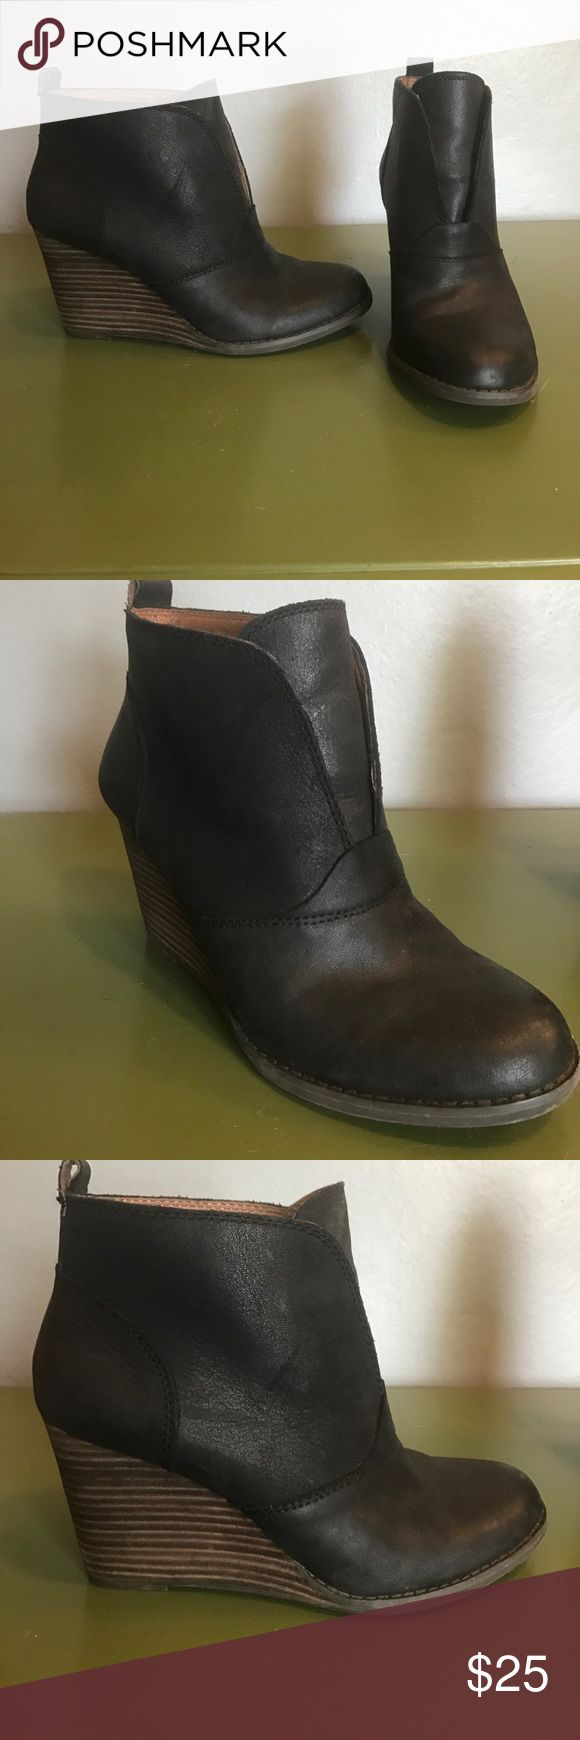 Lucky Brand black wedge boots Very cute Lucky Brand wedge black boot. Very comfortable and only worn a few times. Lucky Brand Shoes Ankle Boots & Booties